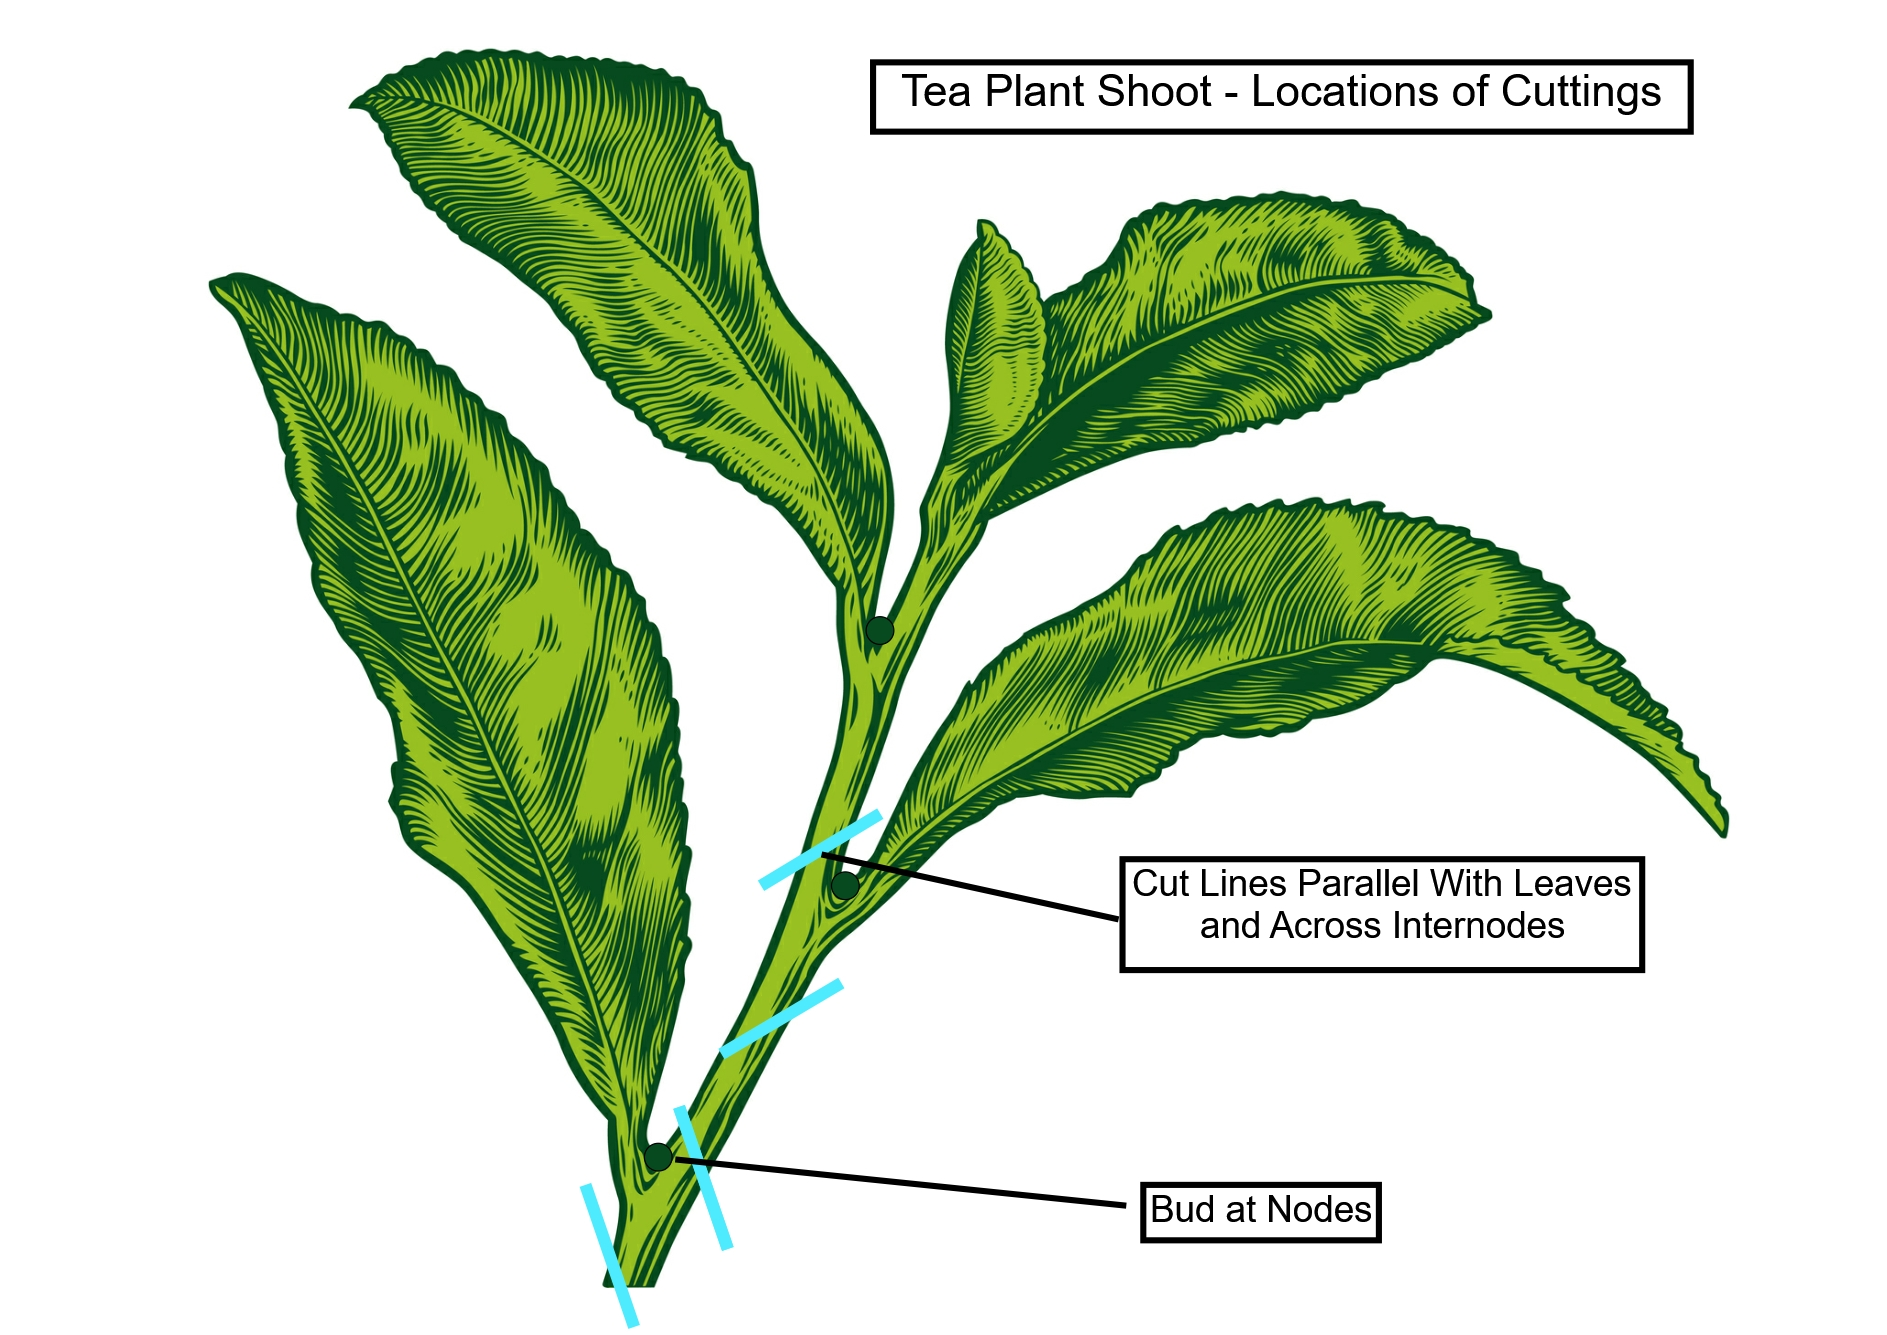 Farming Pure Ceylon Tea - Tea Diagram Shows Locations of Cuttings To Be Used For Cuttings